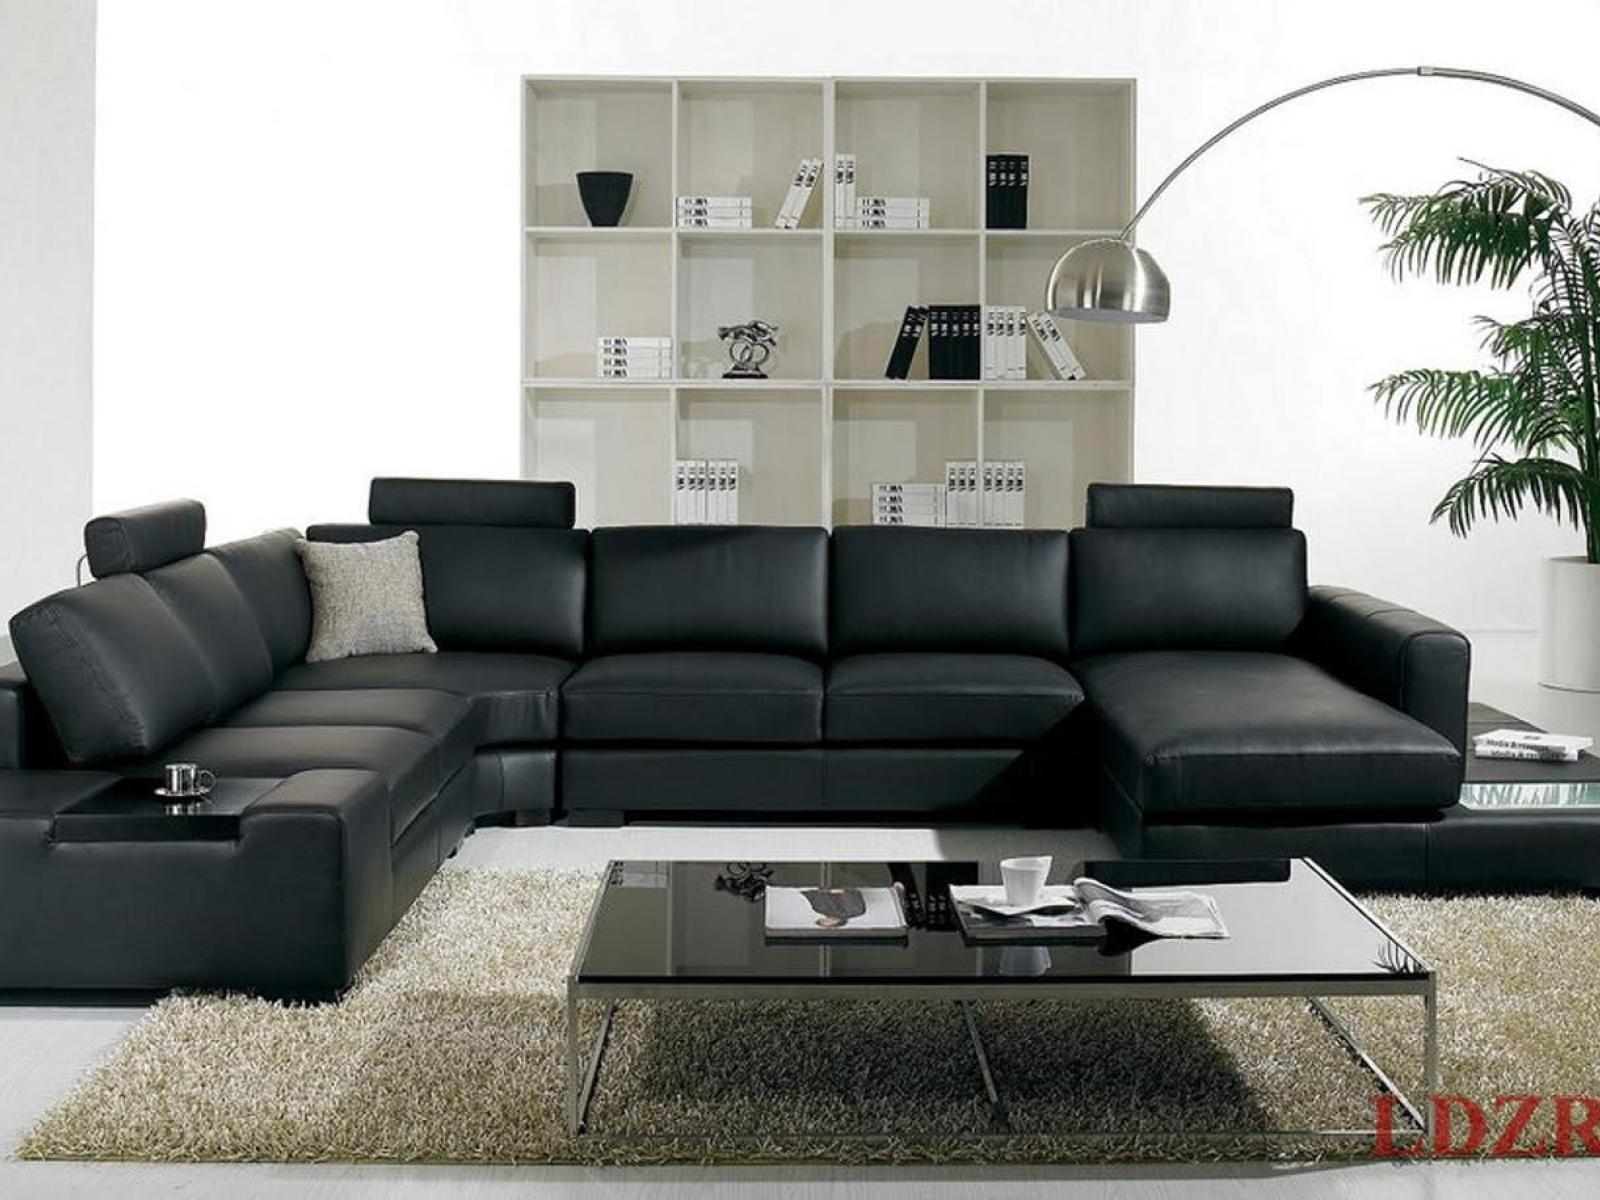 ▻ Sofa : 22 Lovely Modern Formal Dining Room Sets 5 Red Leather Pertaining To Sofa Chairs For Living Room (View 19 of 20)